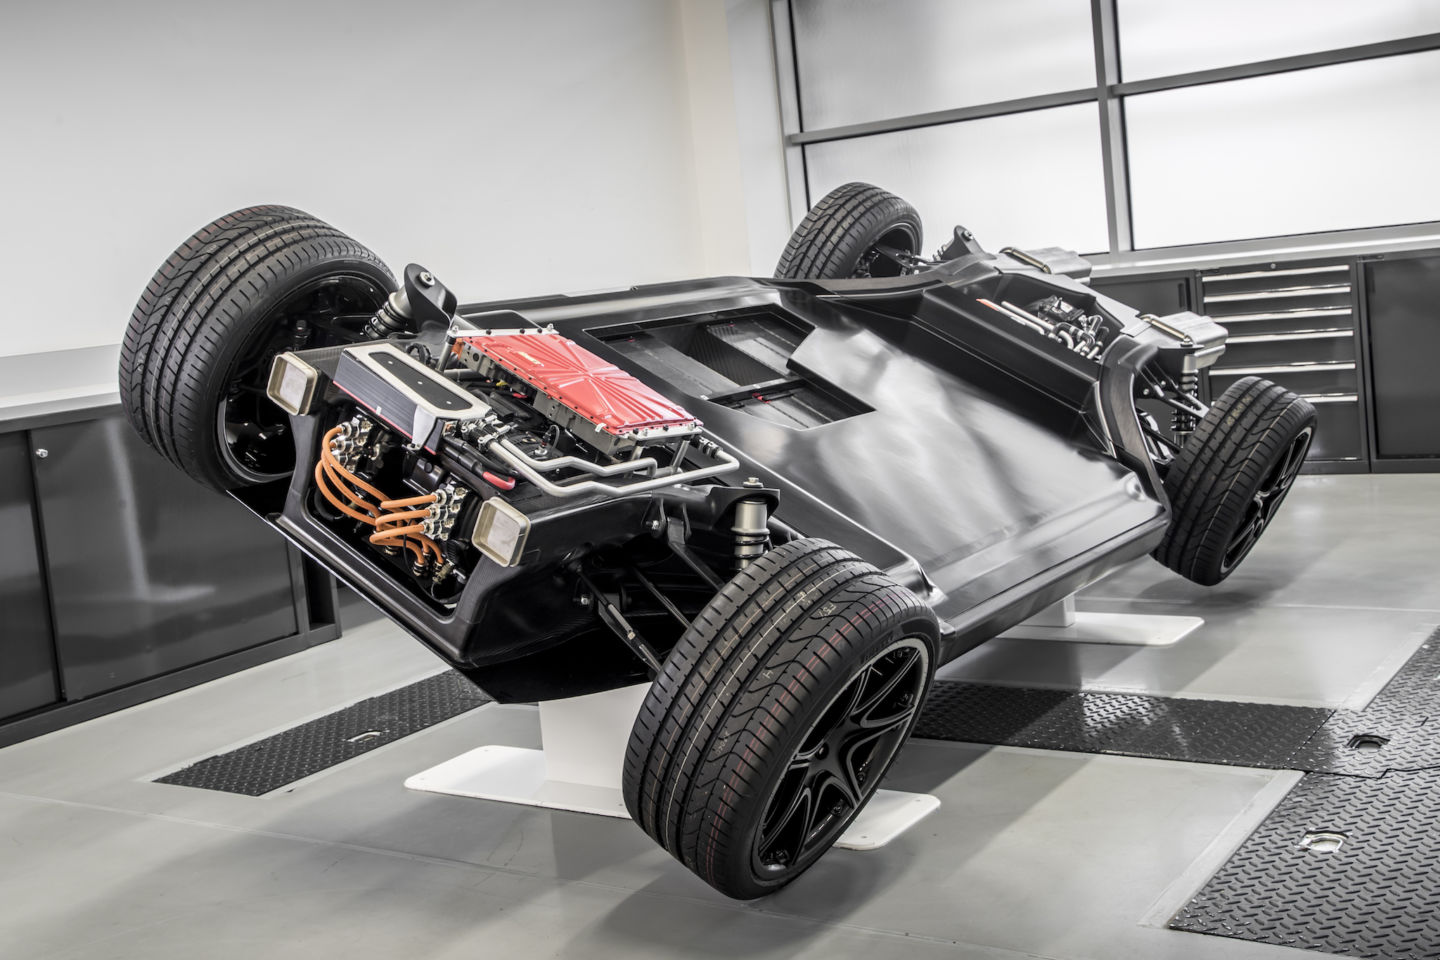 Frank Williams Makes New Platform for Electric Cars